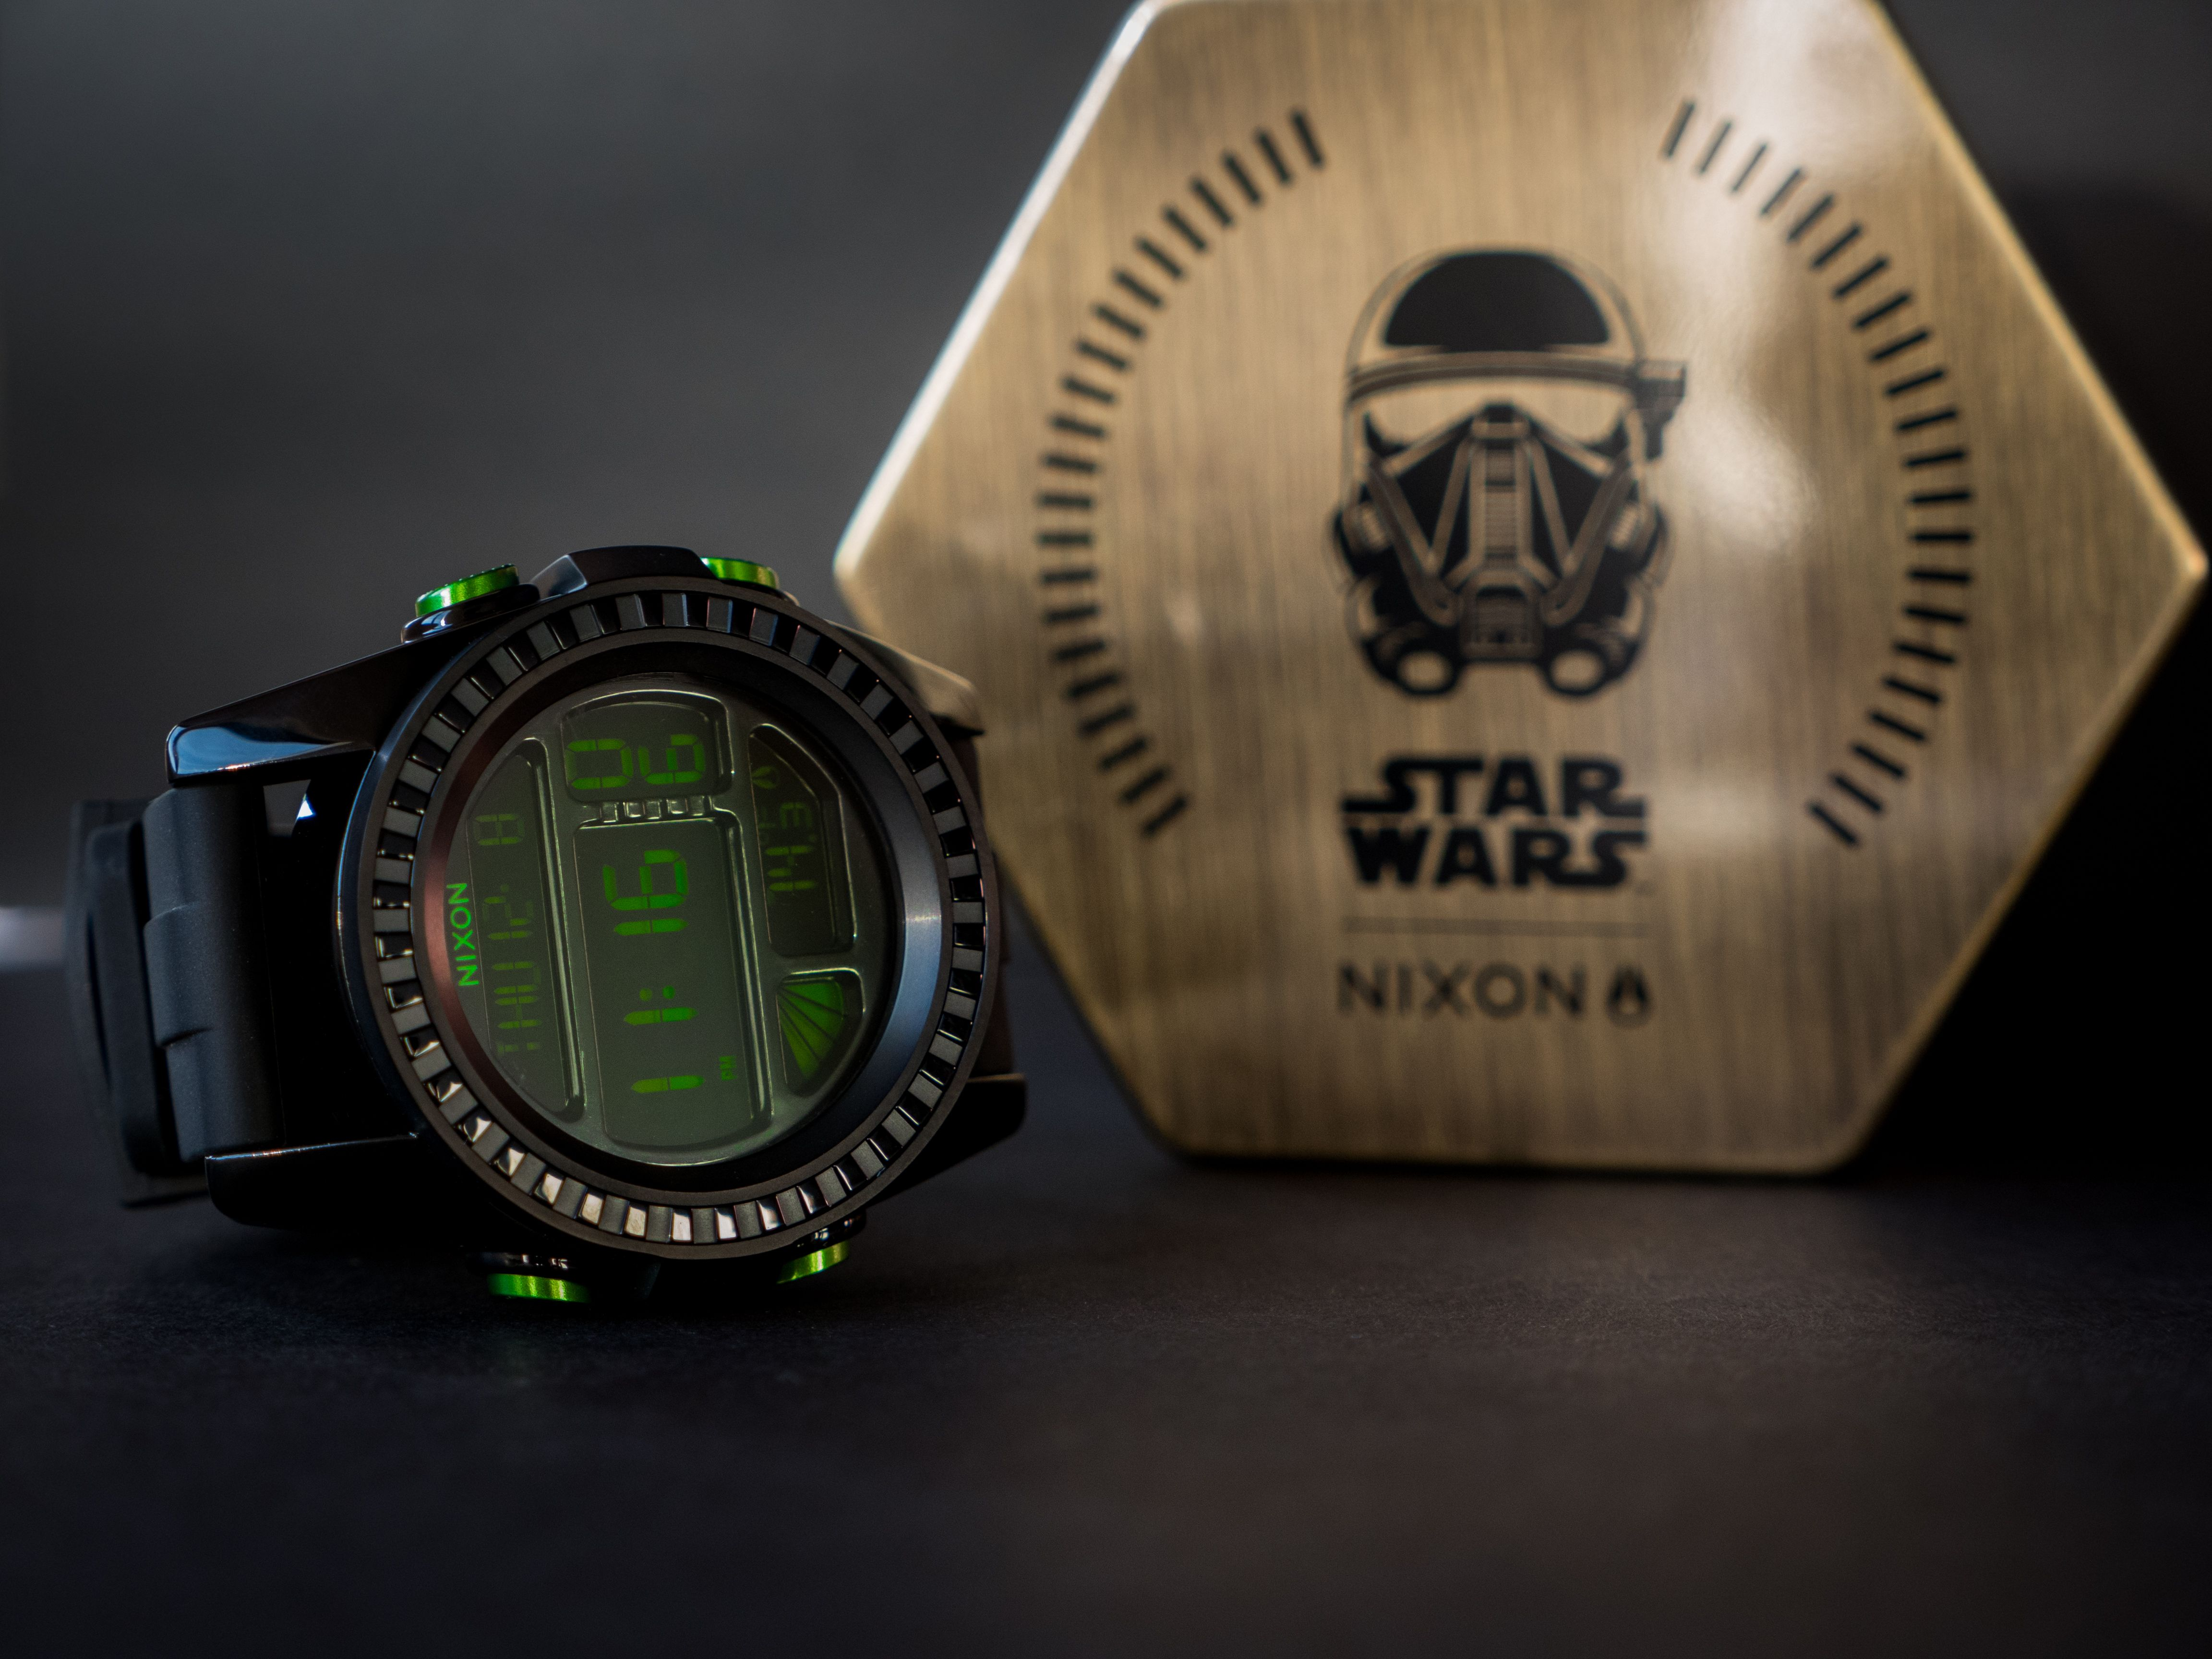 f23beb72dff A rebellion built on hope. The Nixon Rogue One signature collection ...